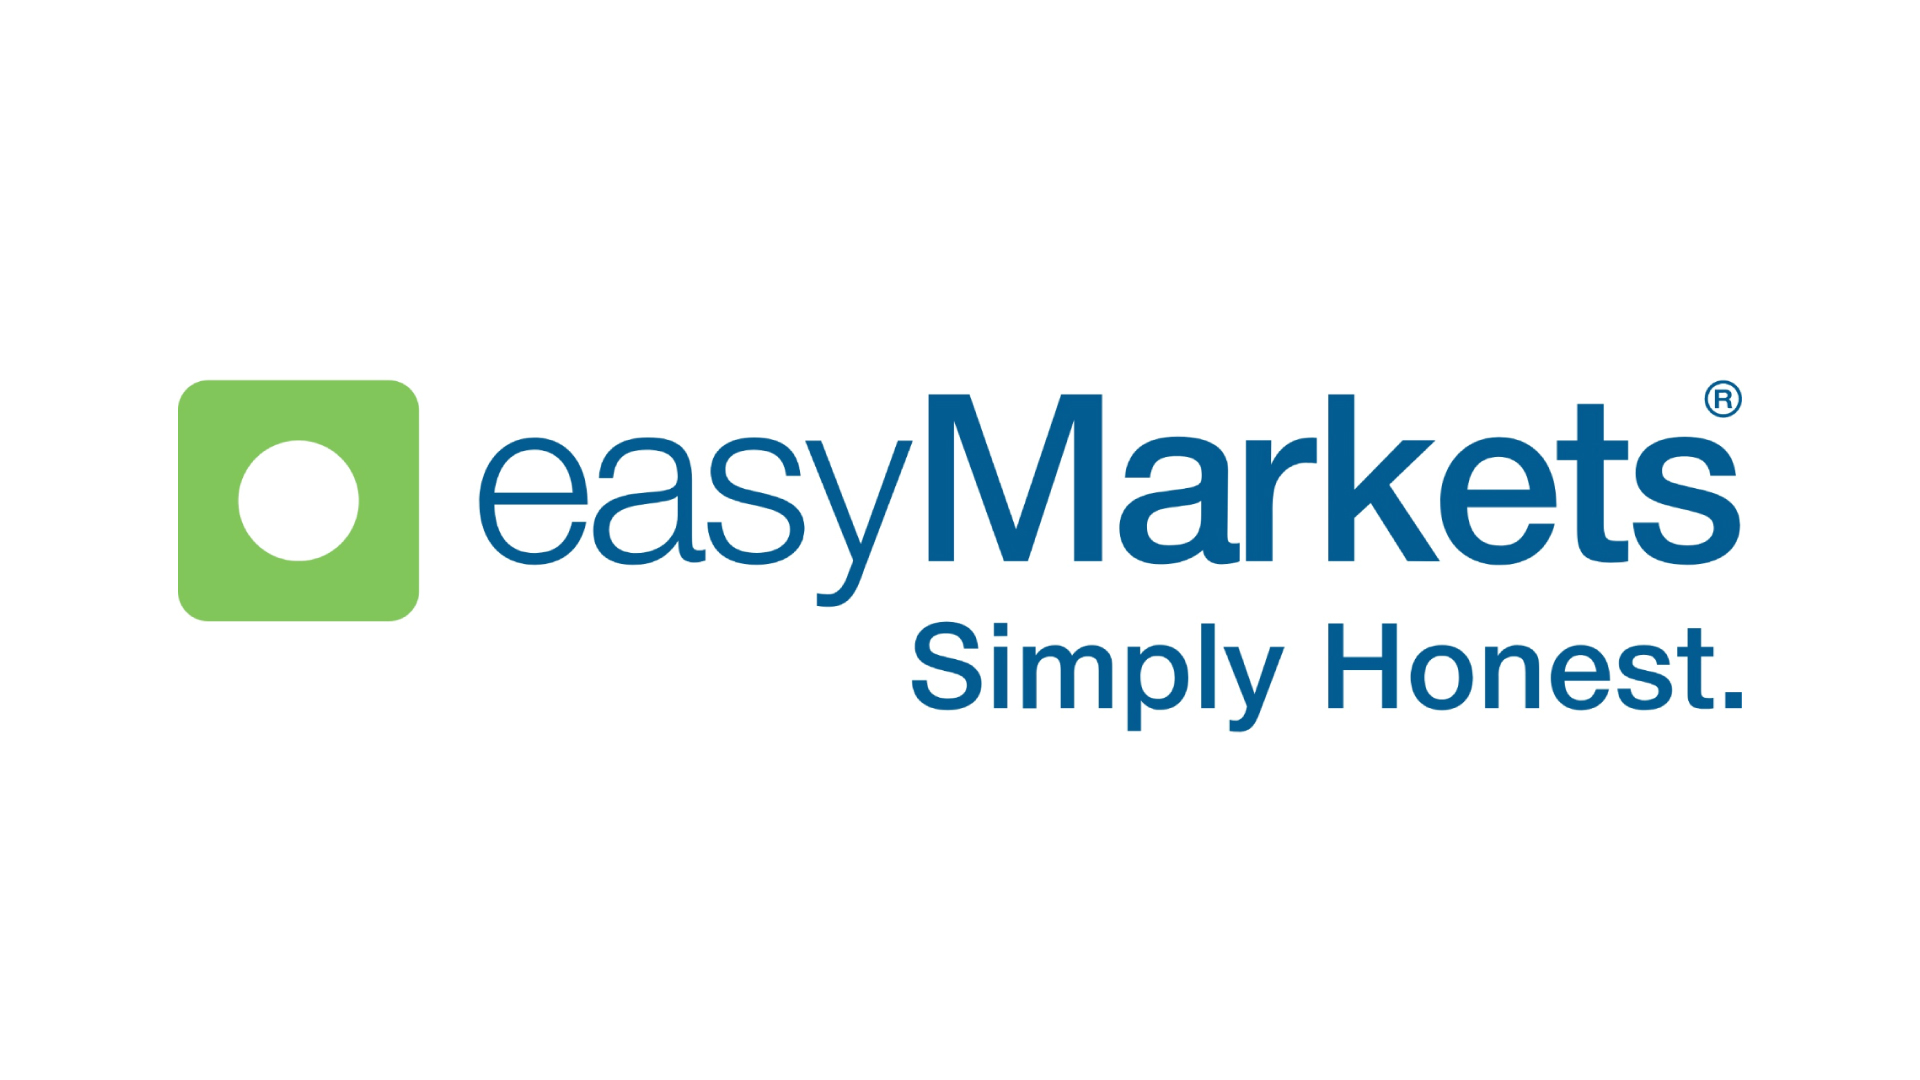 easyMarkets Review – A Top Rated Broker to Trade With